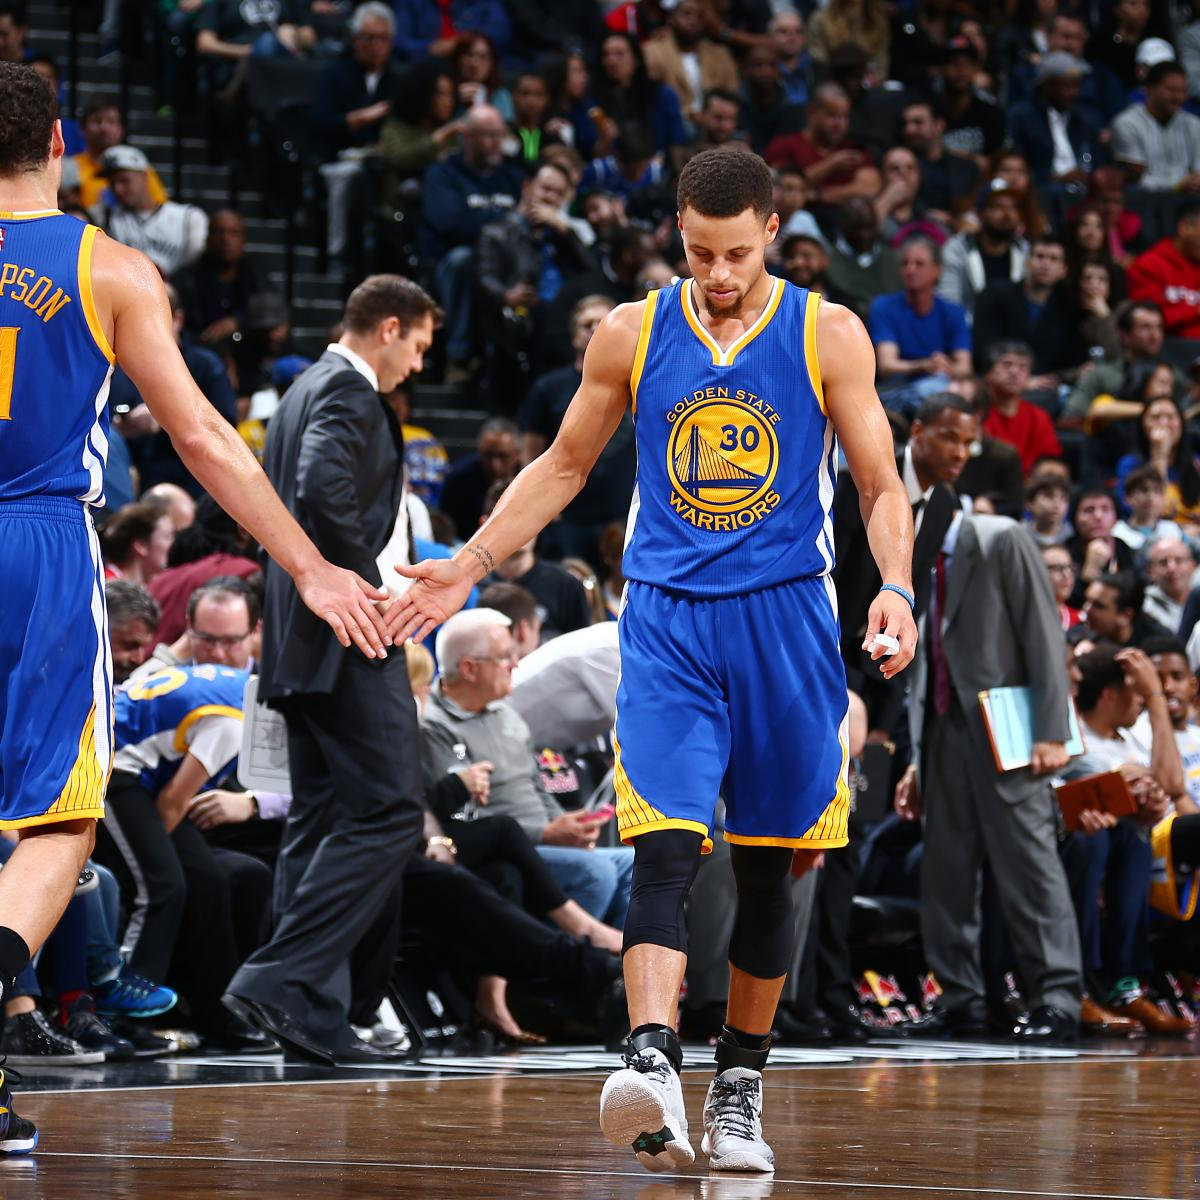 Warriors Vs. Nets: Score, Highlights And Reaction From